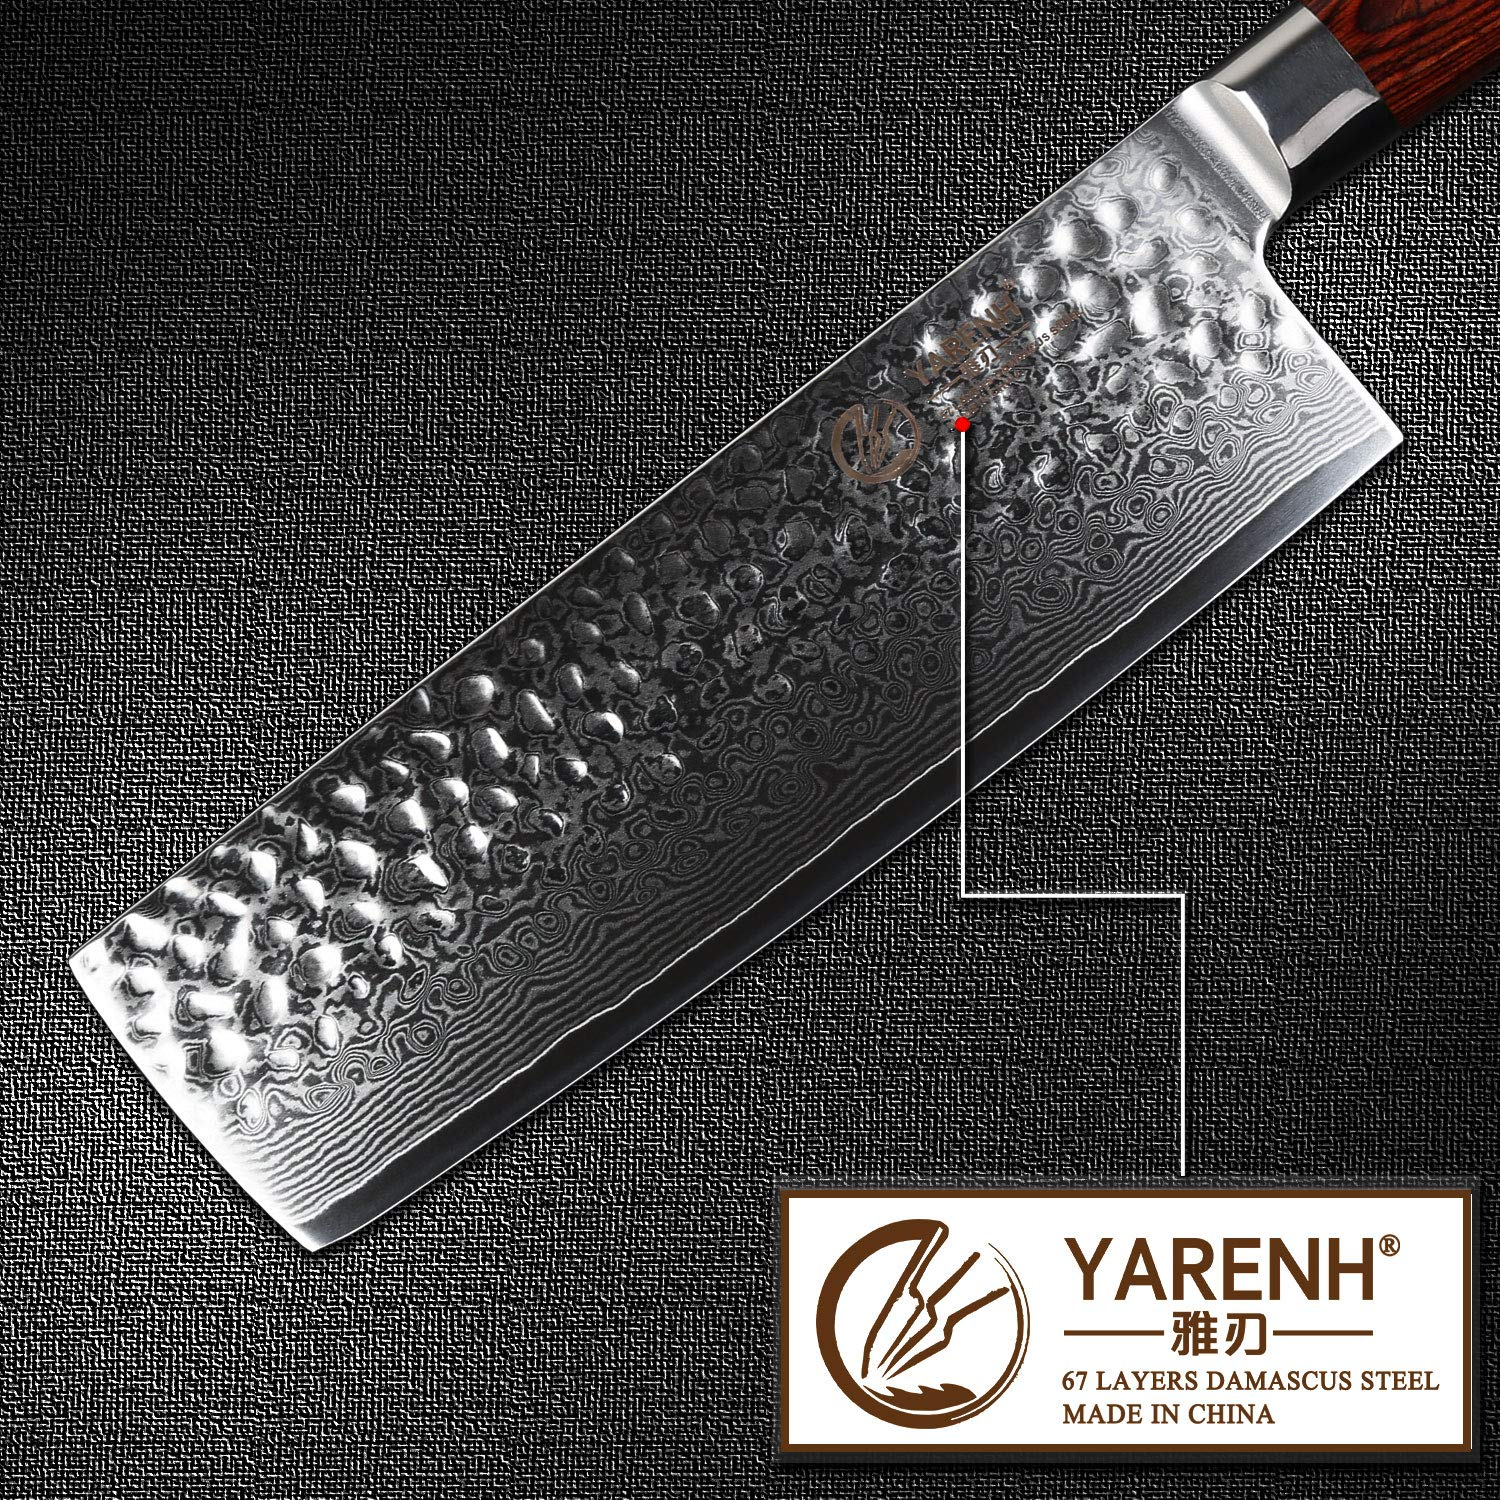 Yarenh Vegetable Knife 6.5 inch,High Carbon Japanese Damascus Steel Blade Professional chef knife,Sharp Home Kitchen Knives,Pakka wood Handle,Gift Box Packaging,Gyuto Knife HYZ-Series by YARENH